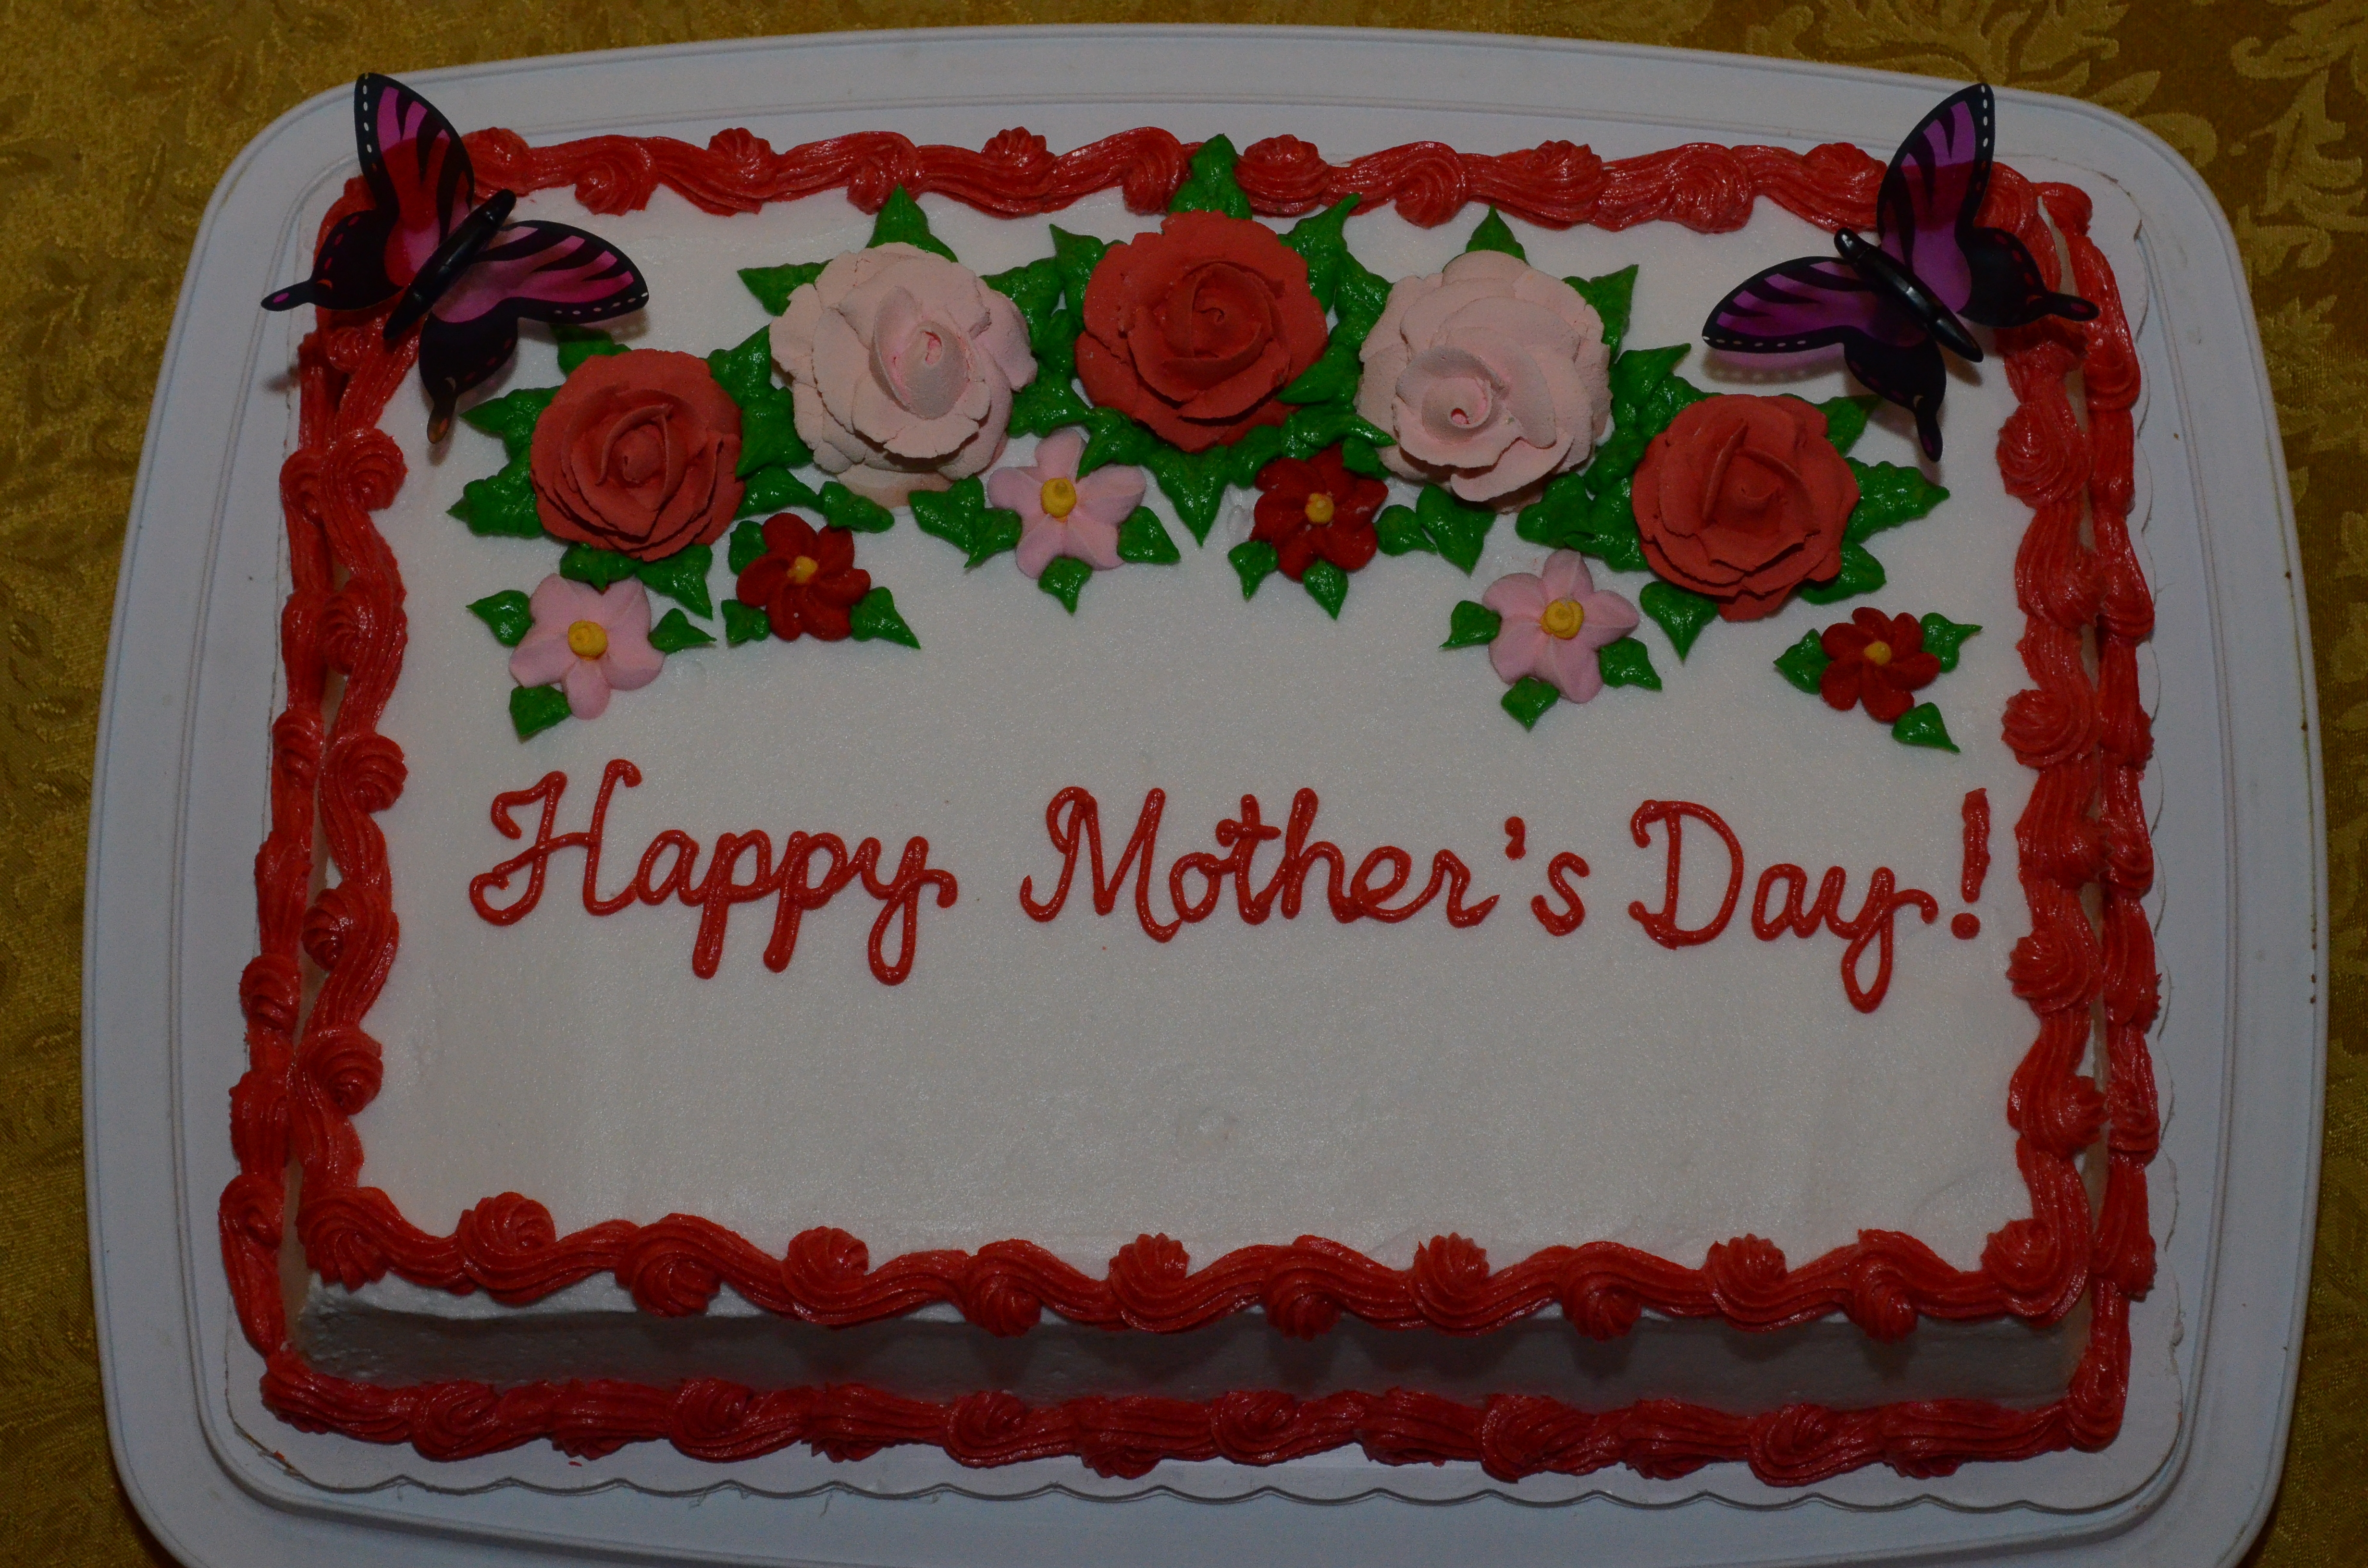 May 10 2014 I Baked And Decorated This Mothers Day Pineapple Chiffon Cake For My Churchs Mothers Day Celebration Potluck Lunch